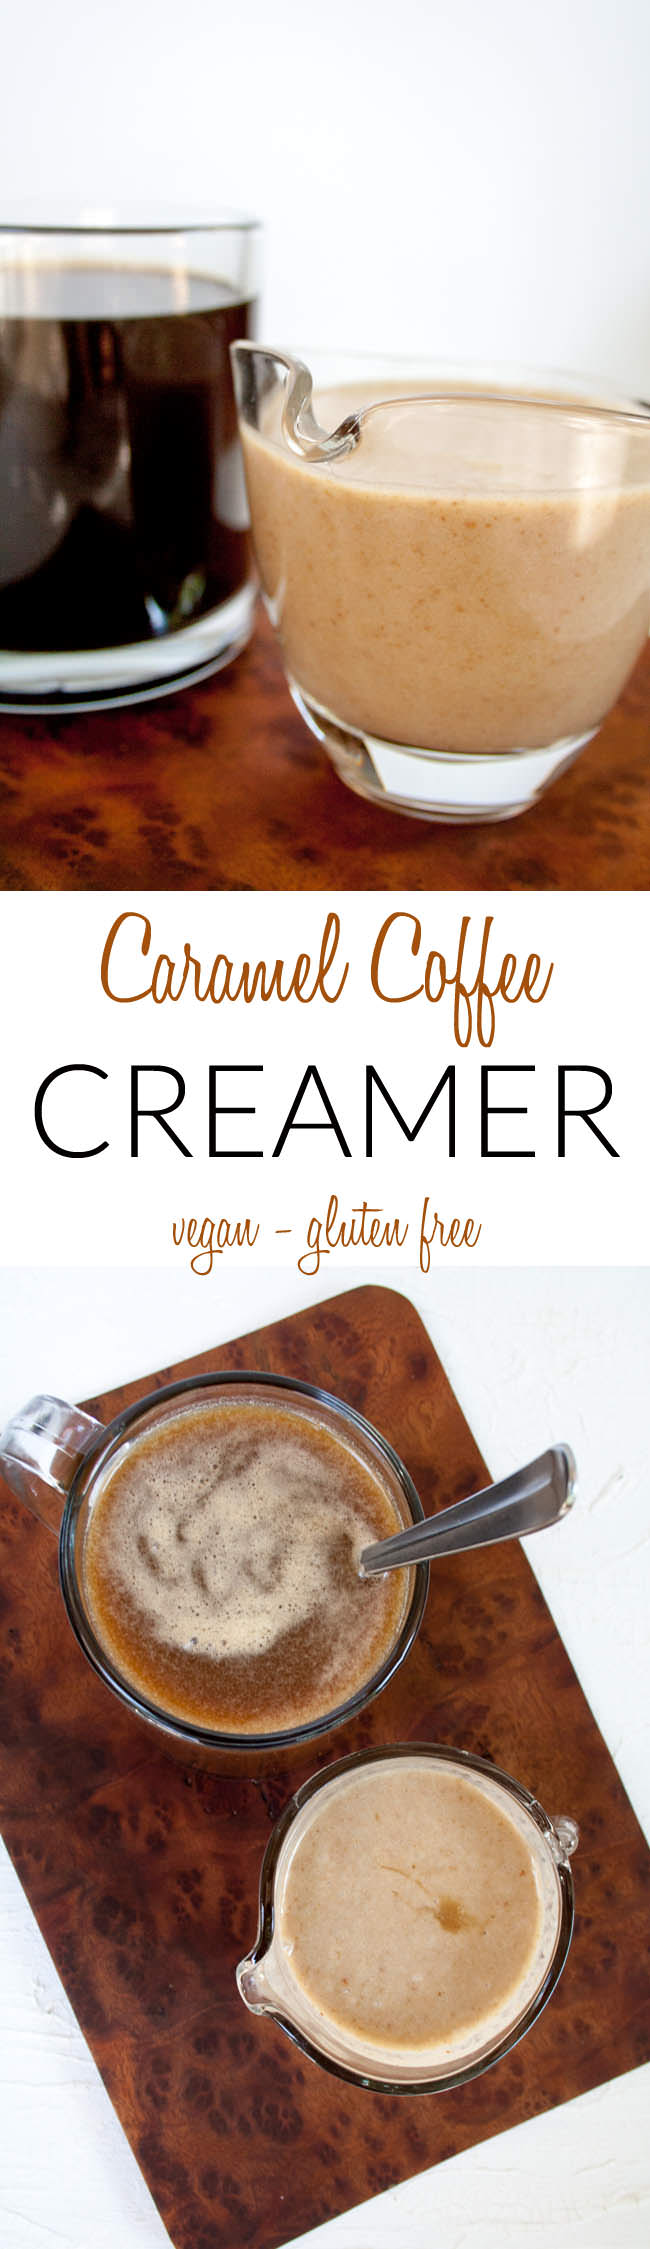 Caramel Creamer long pin for Pinterest with two photos and text in between.